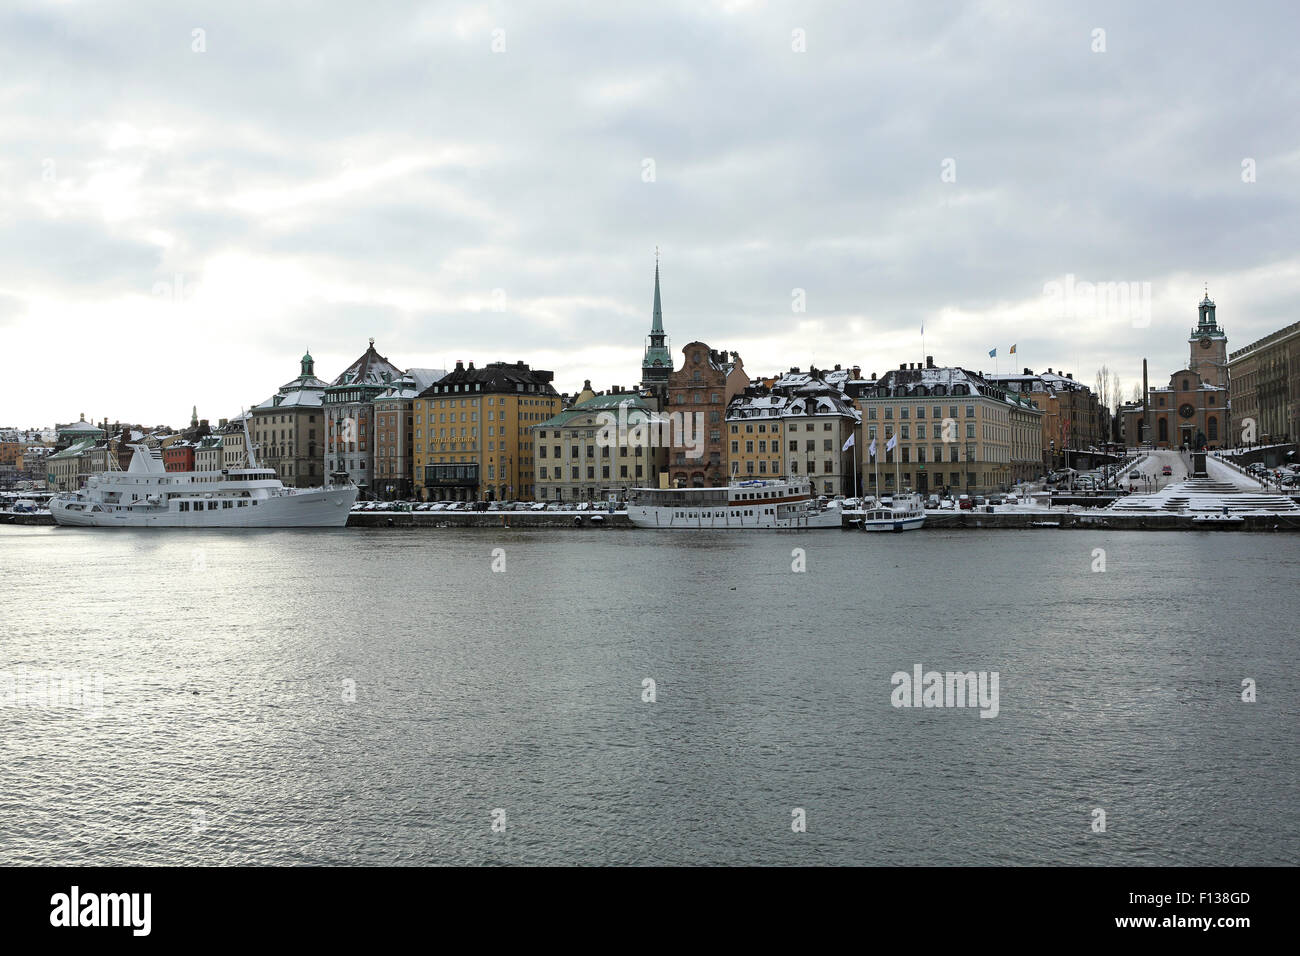 An overcast day in Stockholm, Sweden. - Stock Image